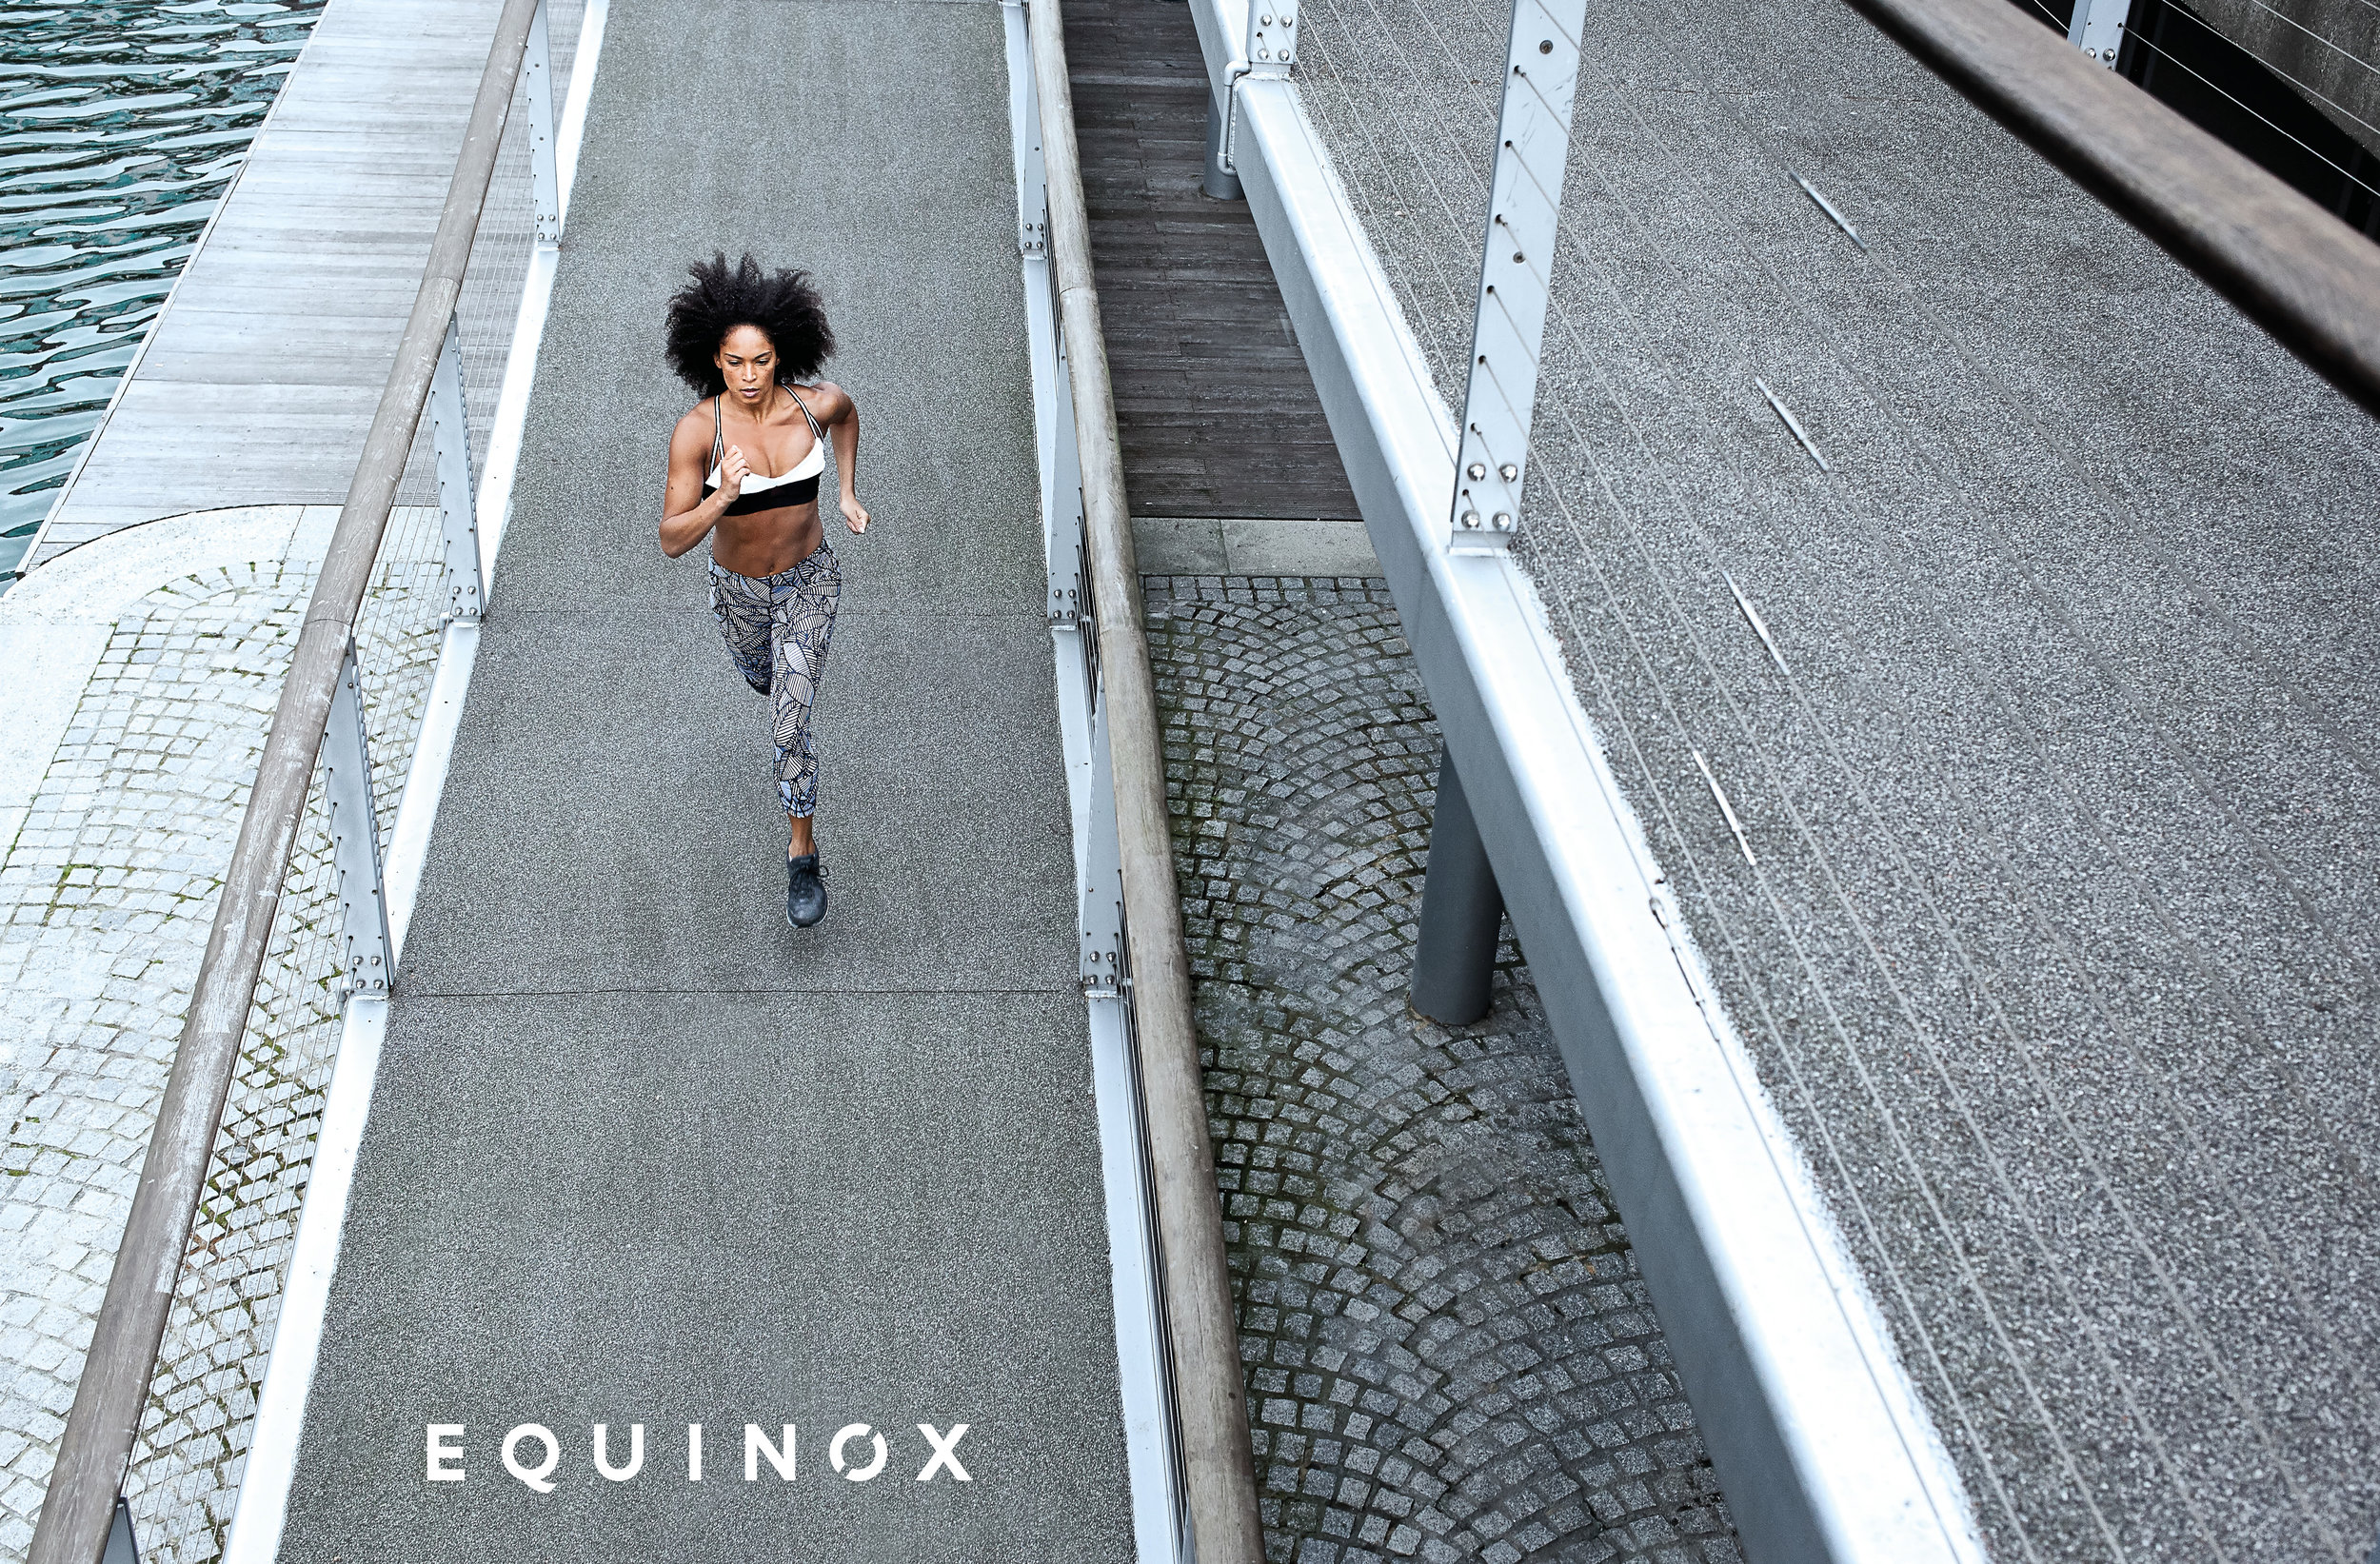 Client - Equinox Gyms | Agency - Equinox | Description - In club point of sale fitness series showcasing UK clubs and athletes.